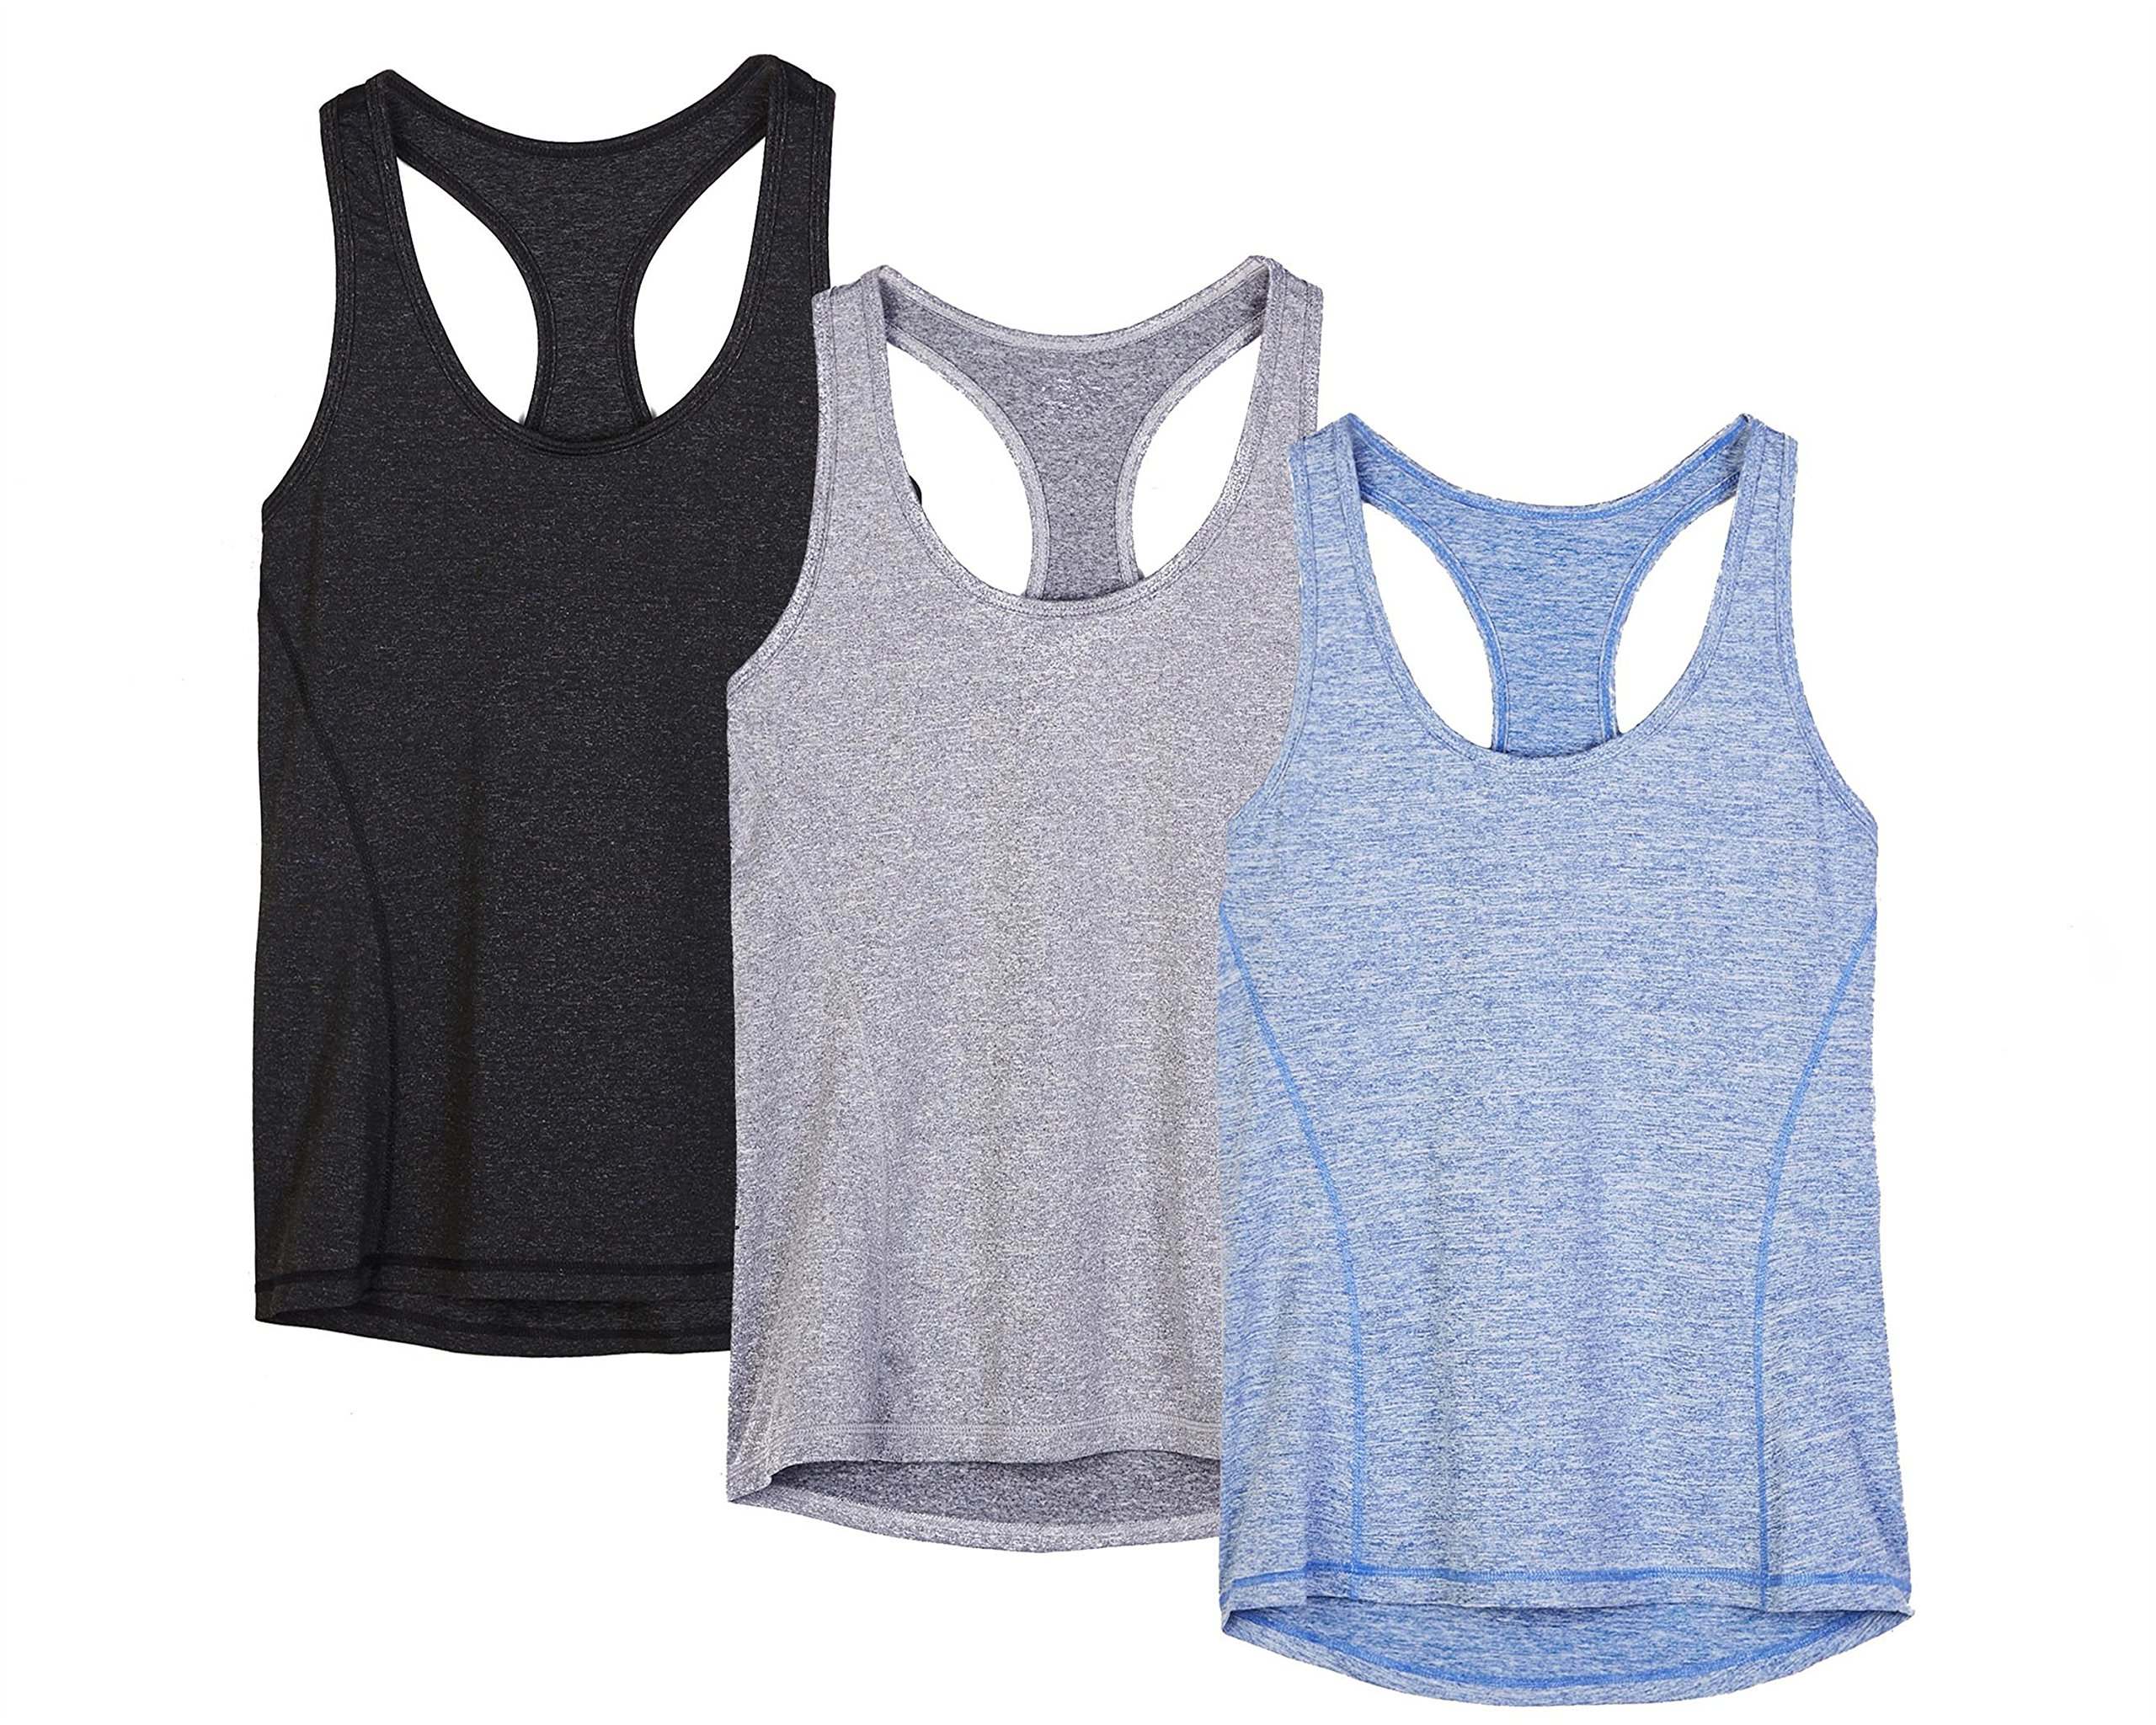 icyzone Workout Tank Tops for Women - Racerback Athletic Yoga Tops, Running Exercise Gym Shirts(Pack of 3)(L, Black/Granite/Blue) by icyzone